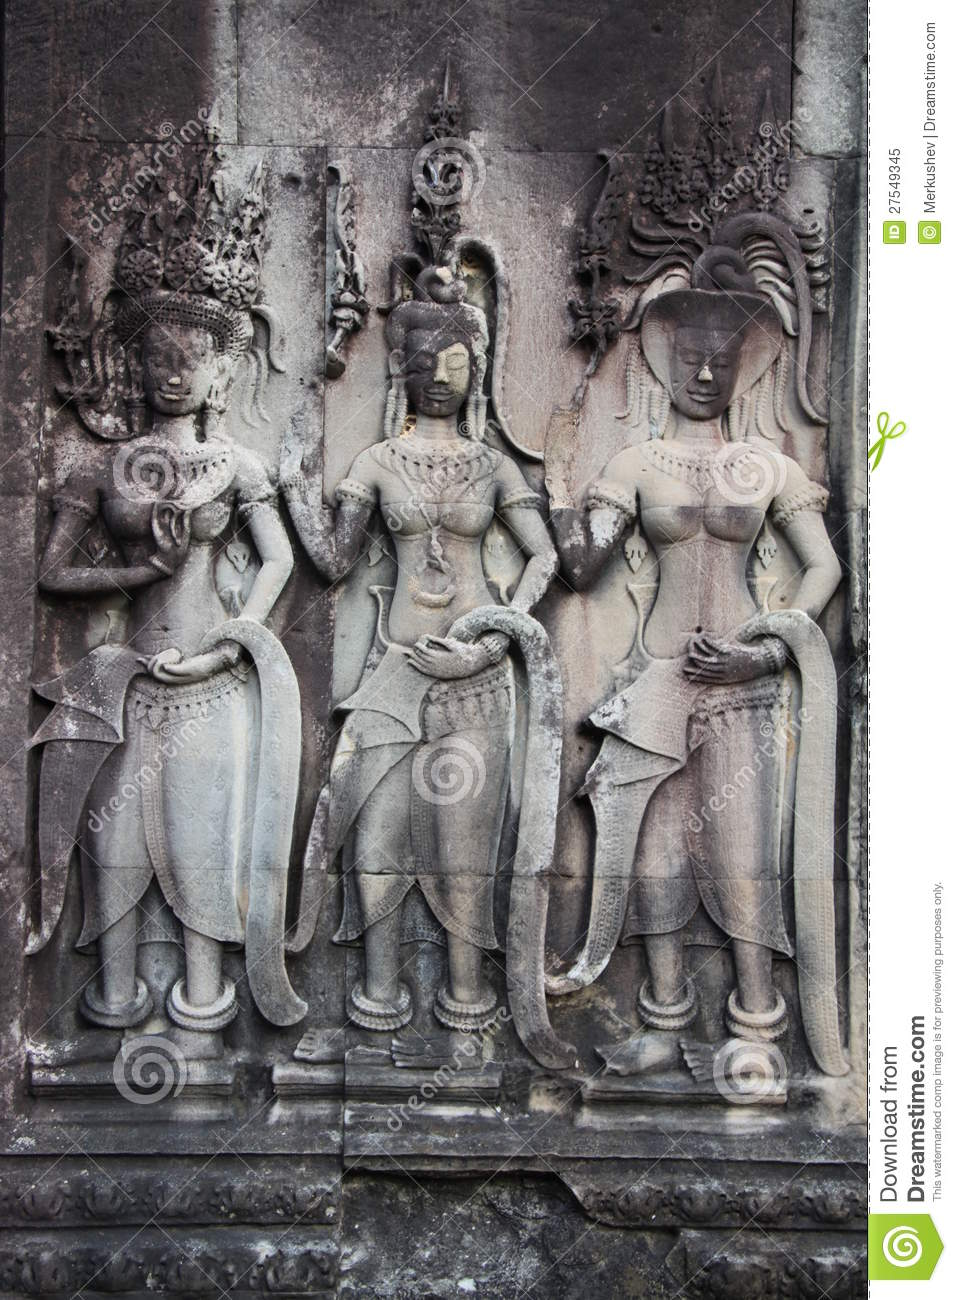 Detail of stone carvings in angkor wat cambodia royalty